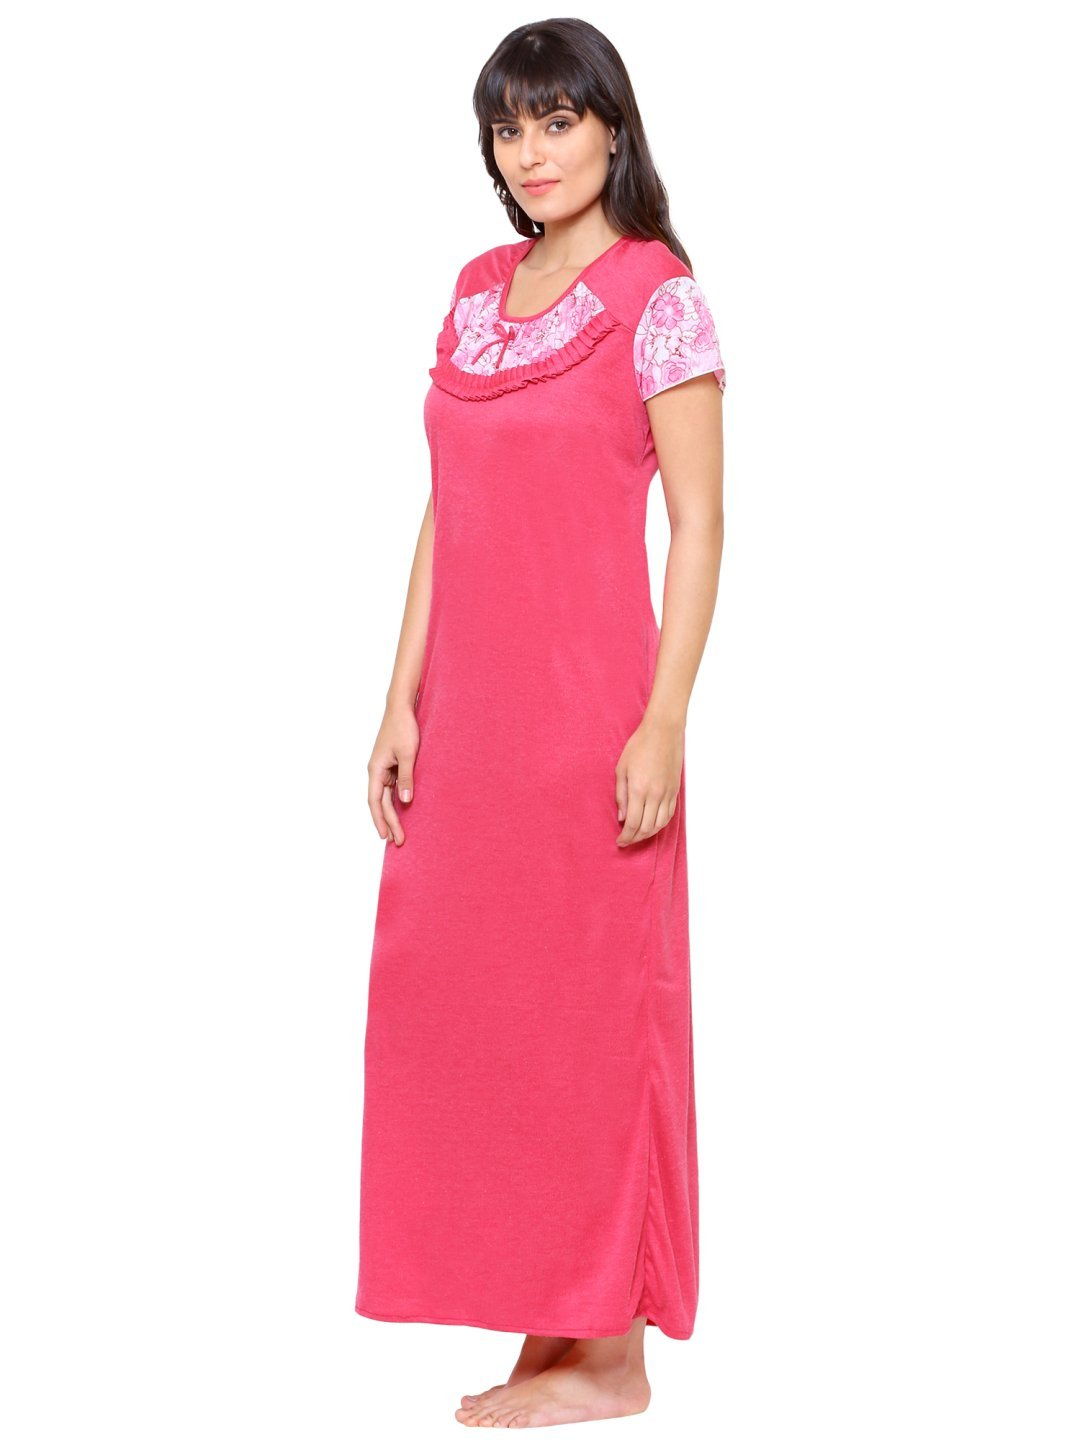 Klamotten Women's Long Nightdress 23R26